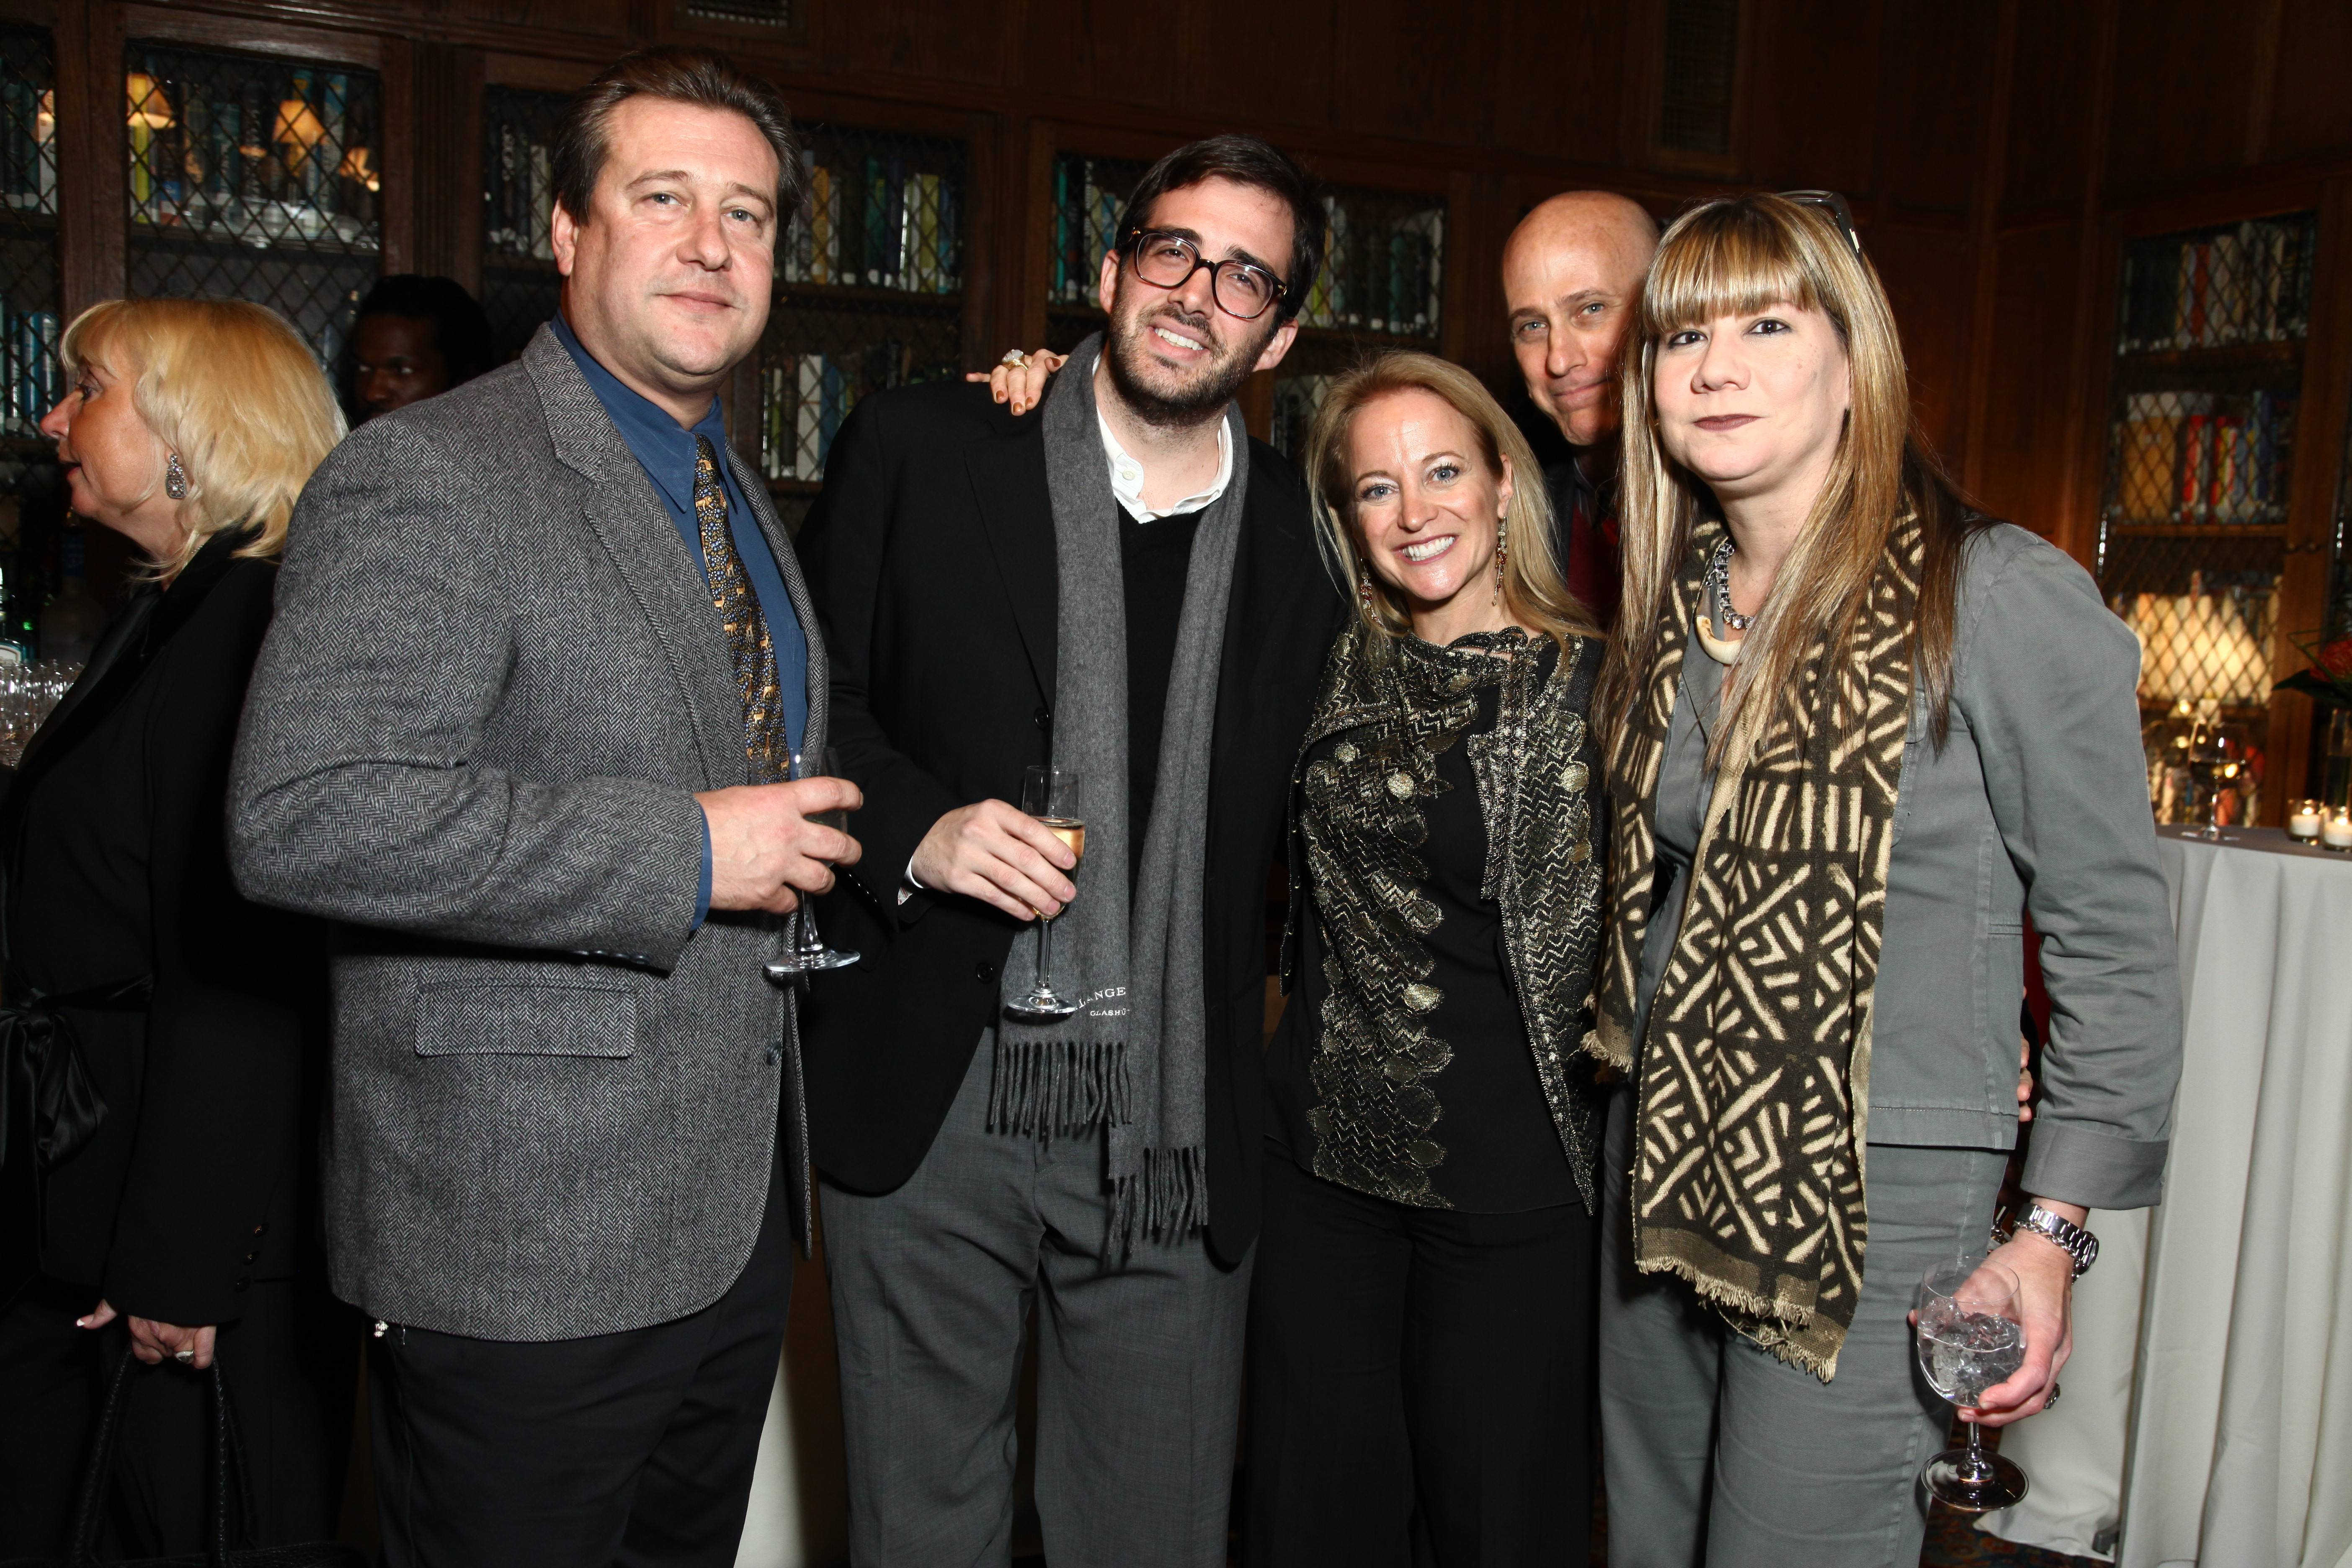 Gary Girvainis, Benjamin Clymer, Michele Gallagher, Mike Thompson, Angela Schuster